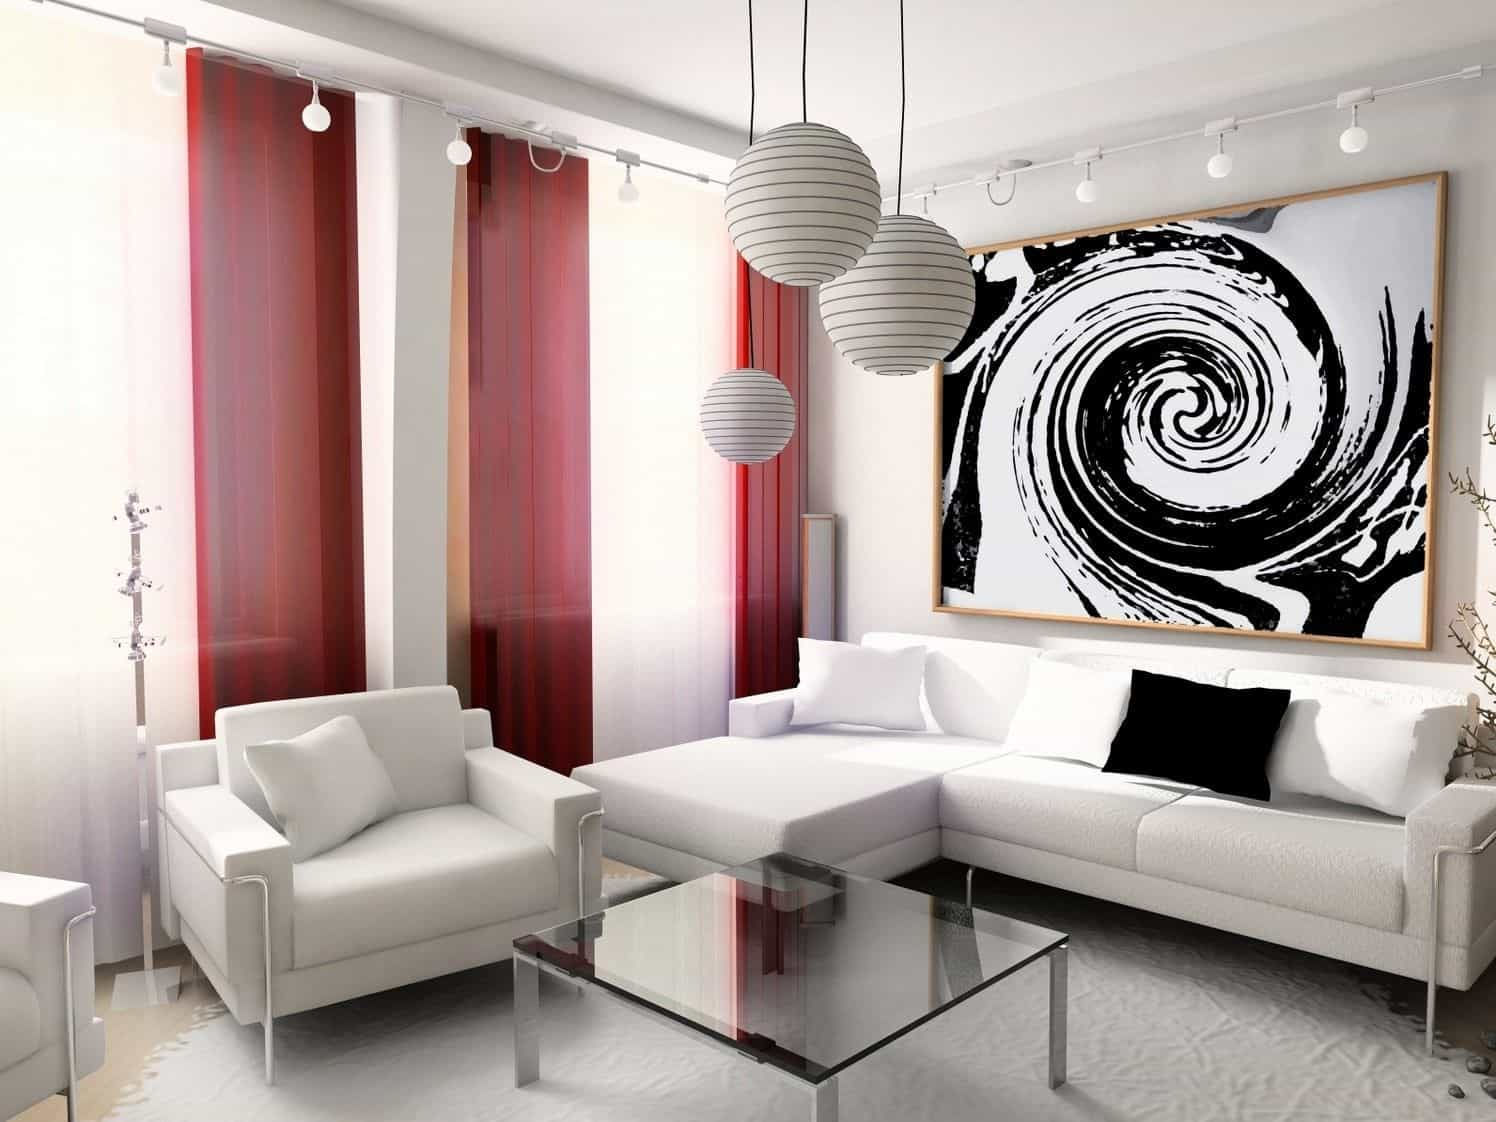 In a simple room, red curtains can make all the difference.